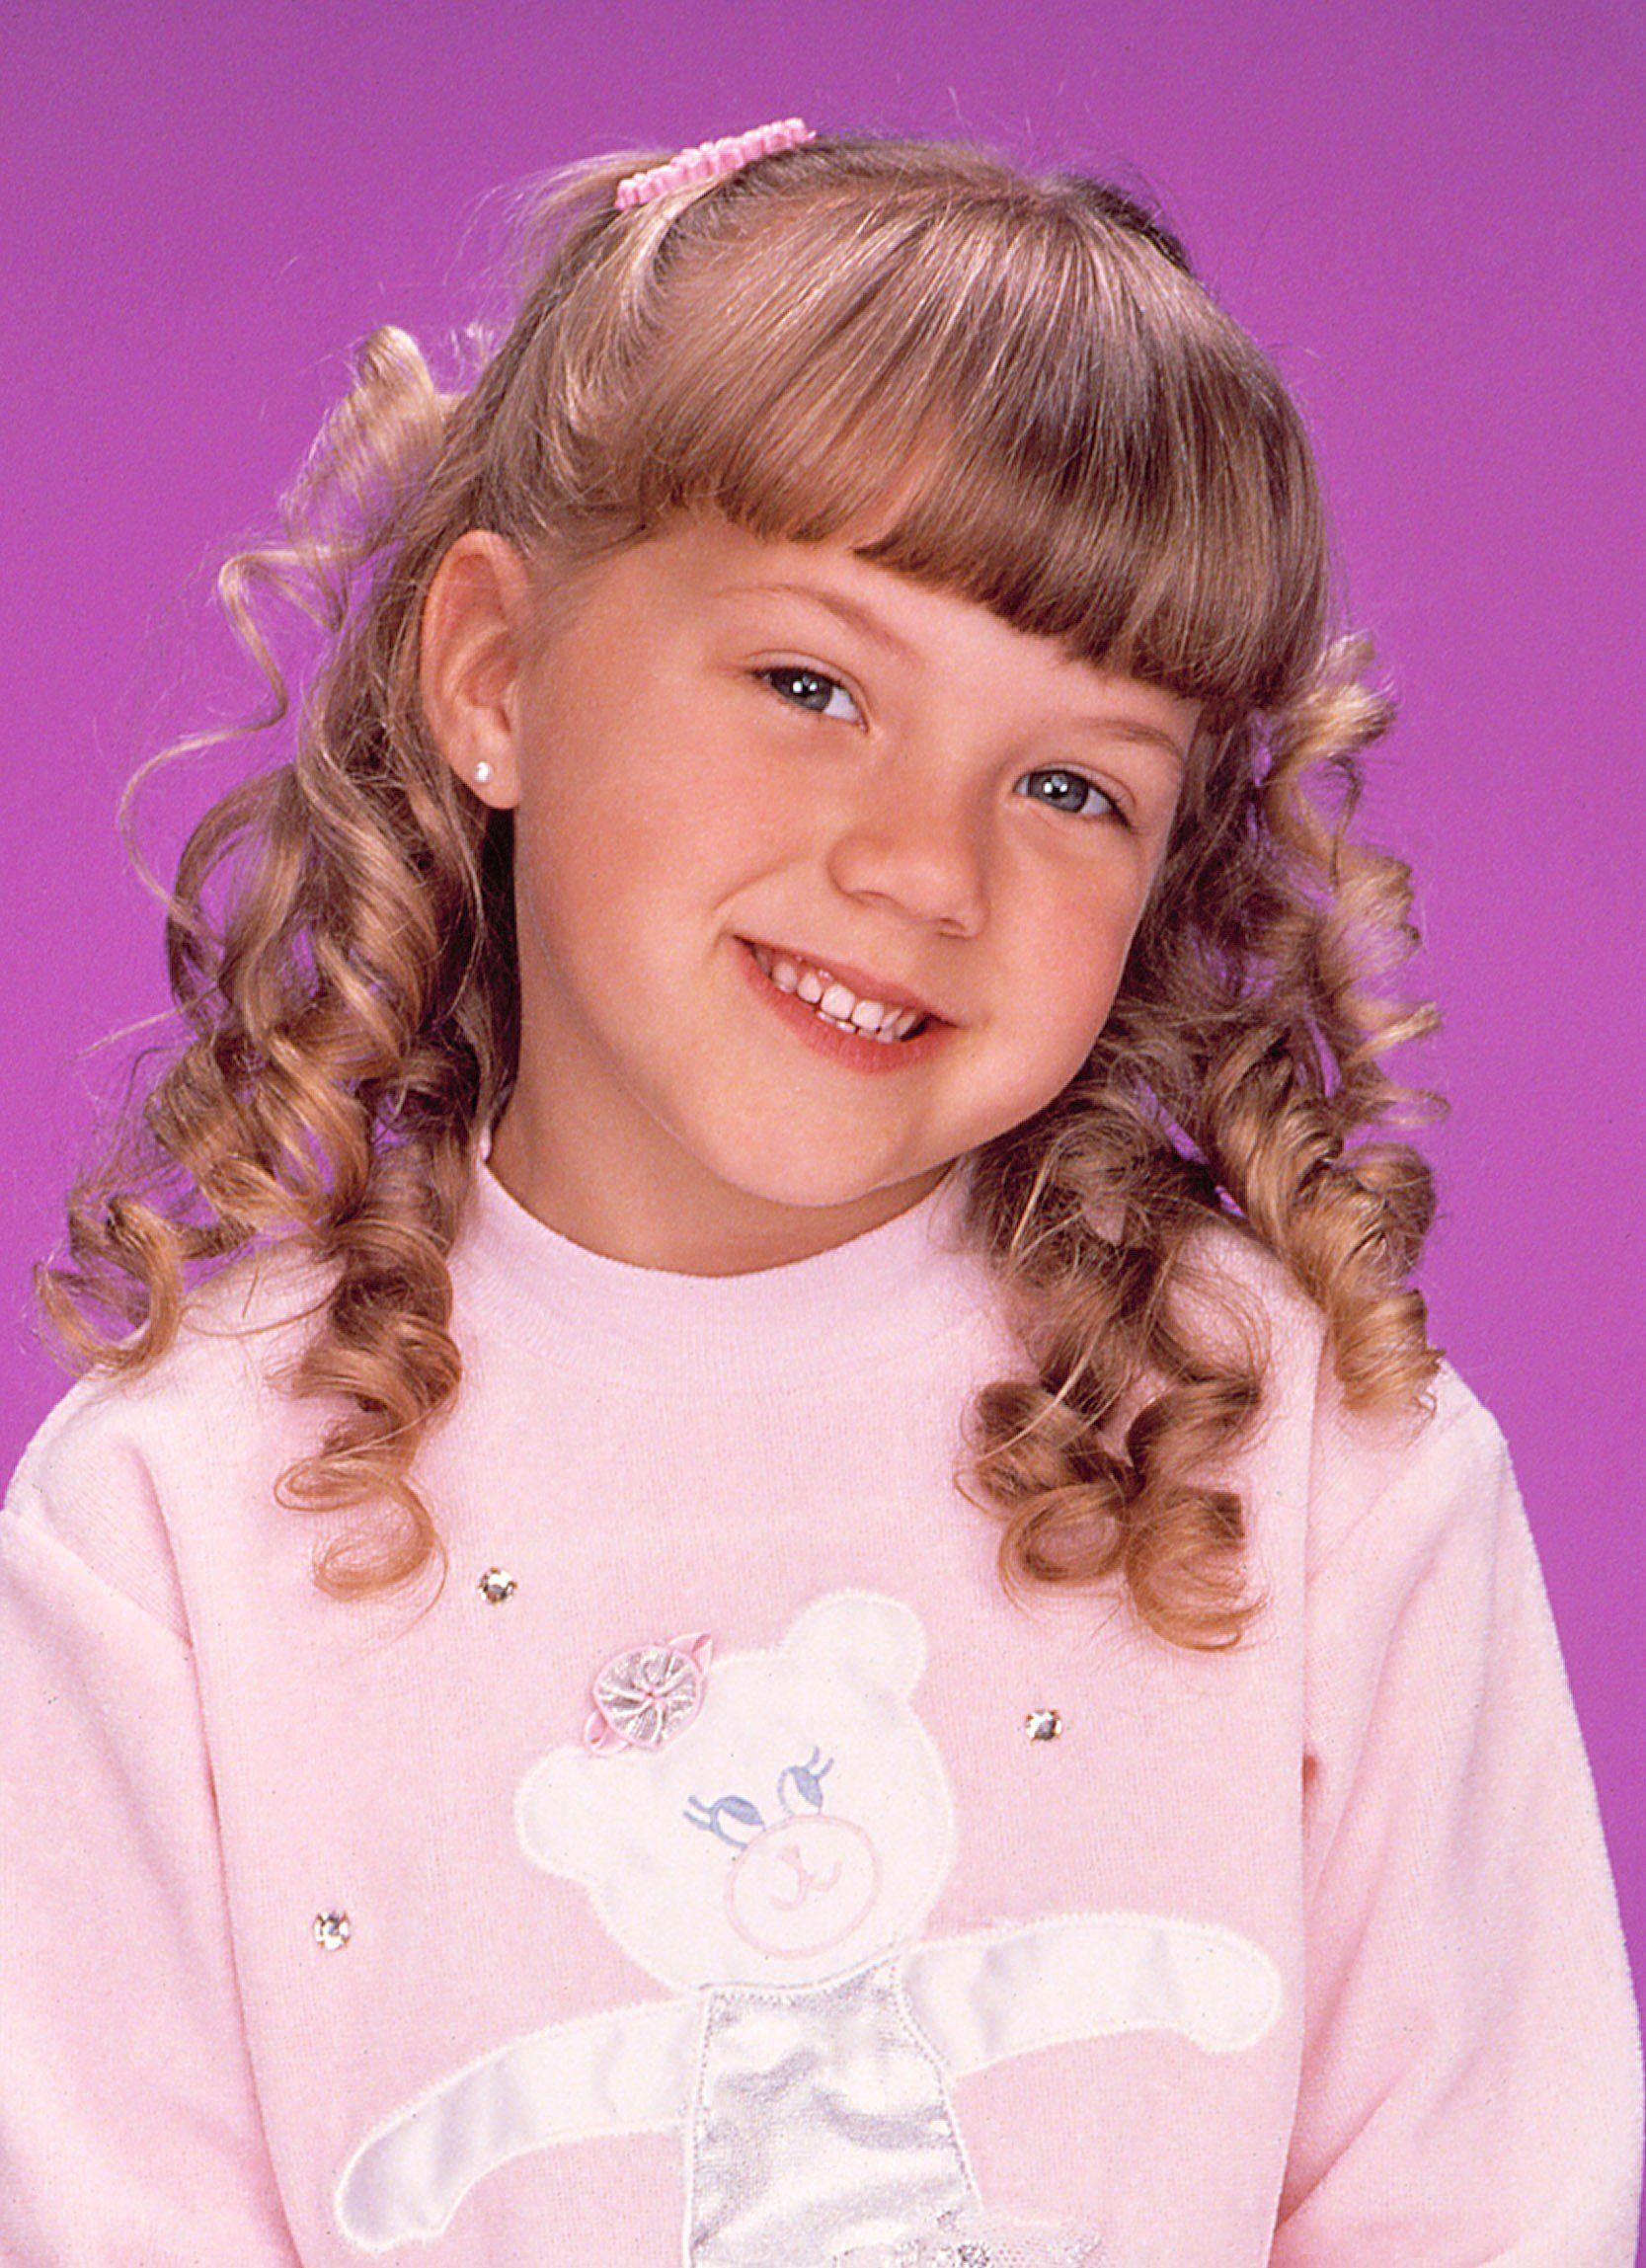 Stephanie from full house naked for that